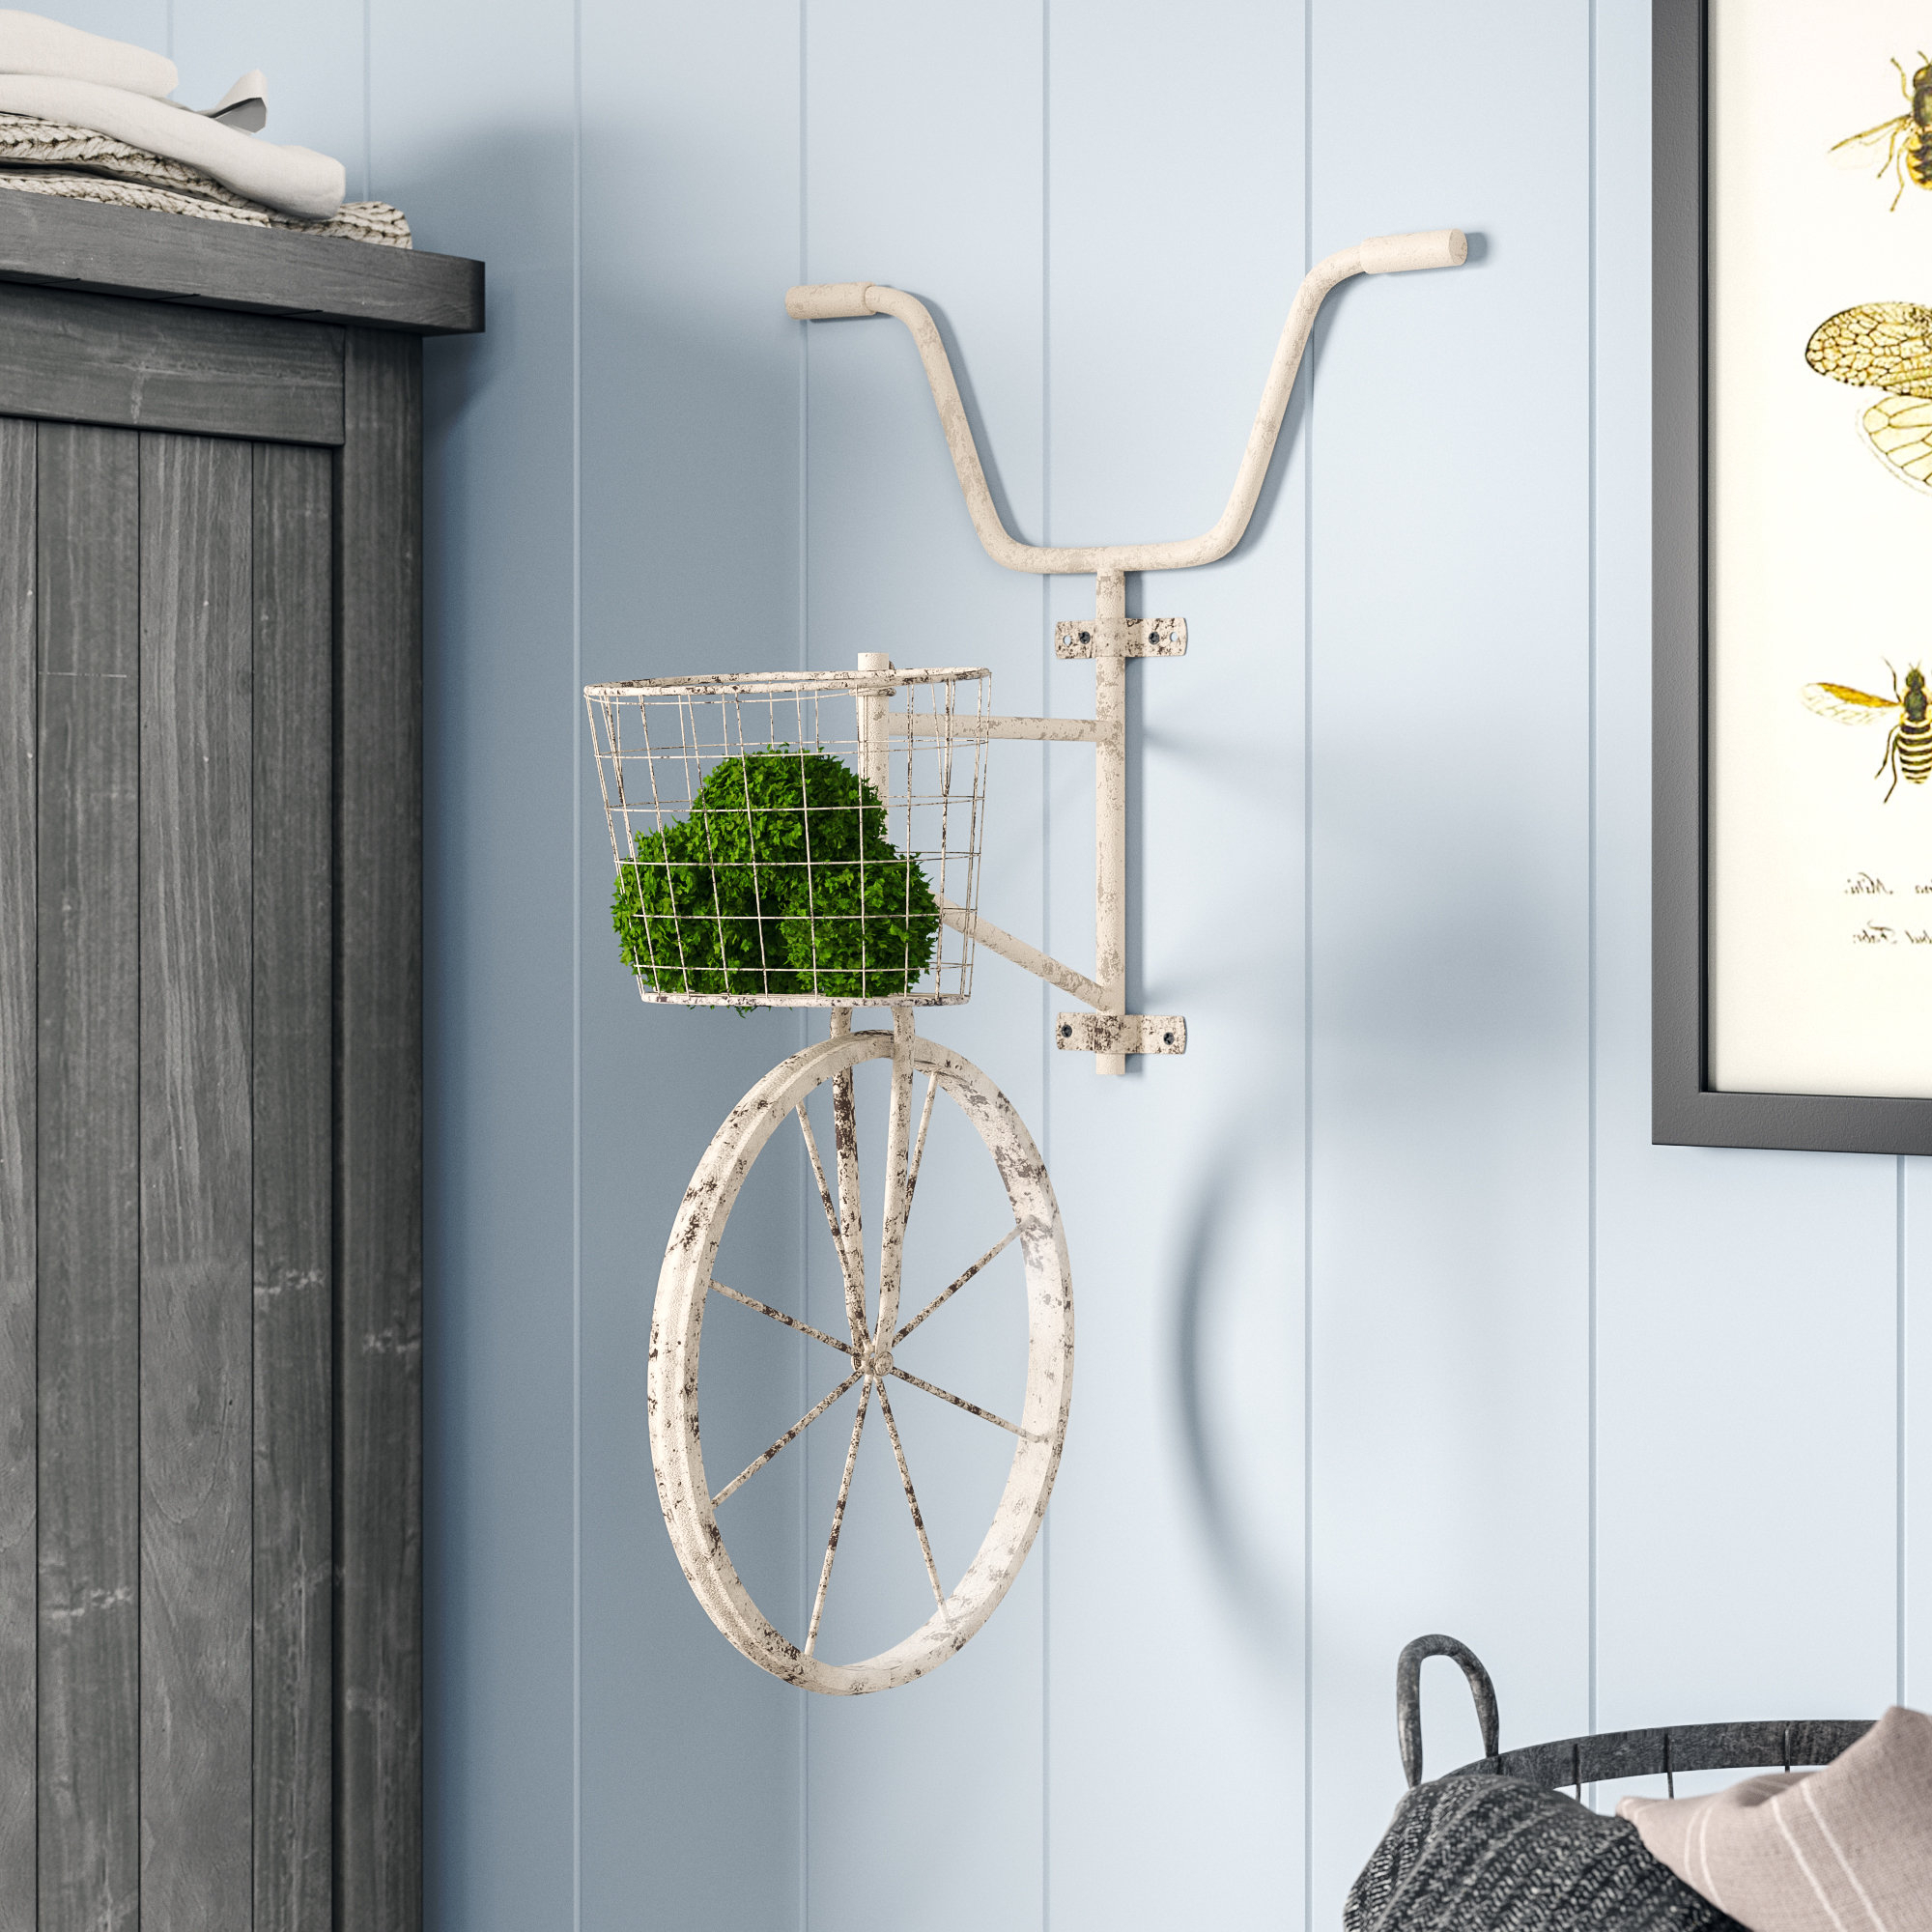 Most Recently Released Metal Bicycle Wall Decor Inside August Grove Metal Bicycle Wall Décor & Reviews (View 20 of 20)